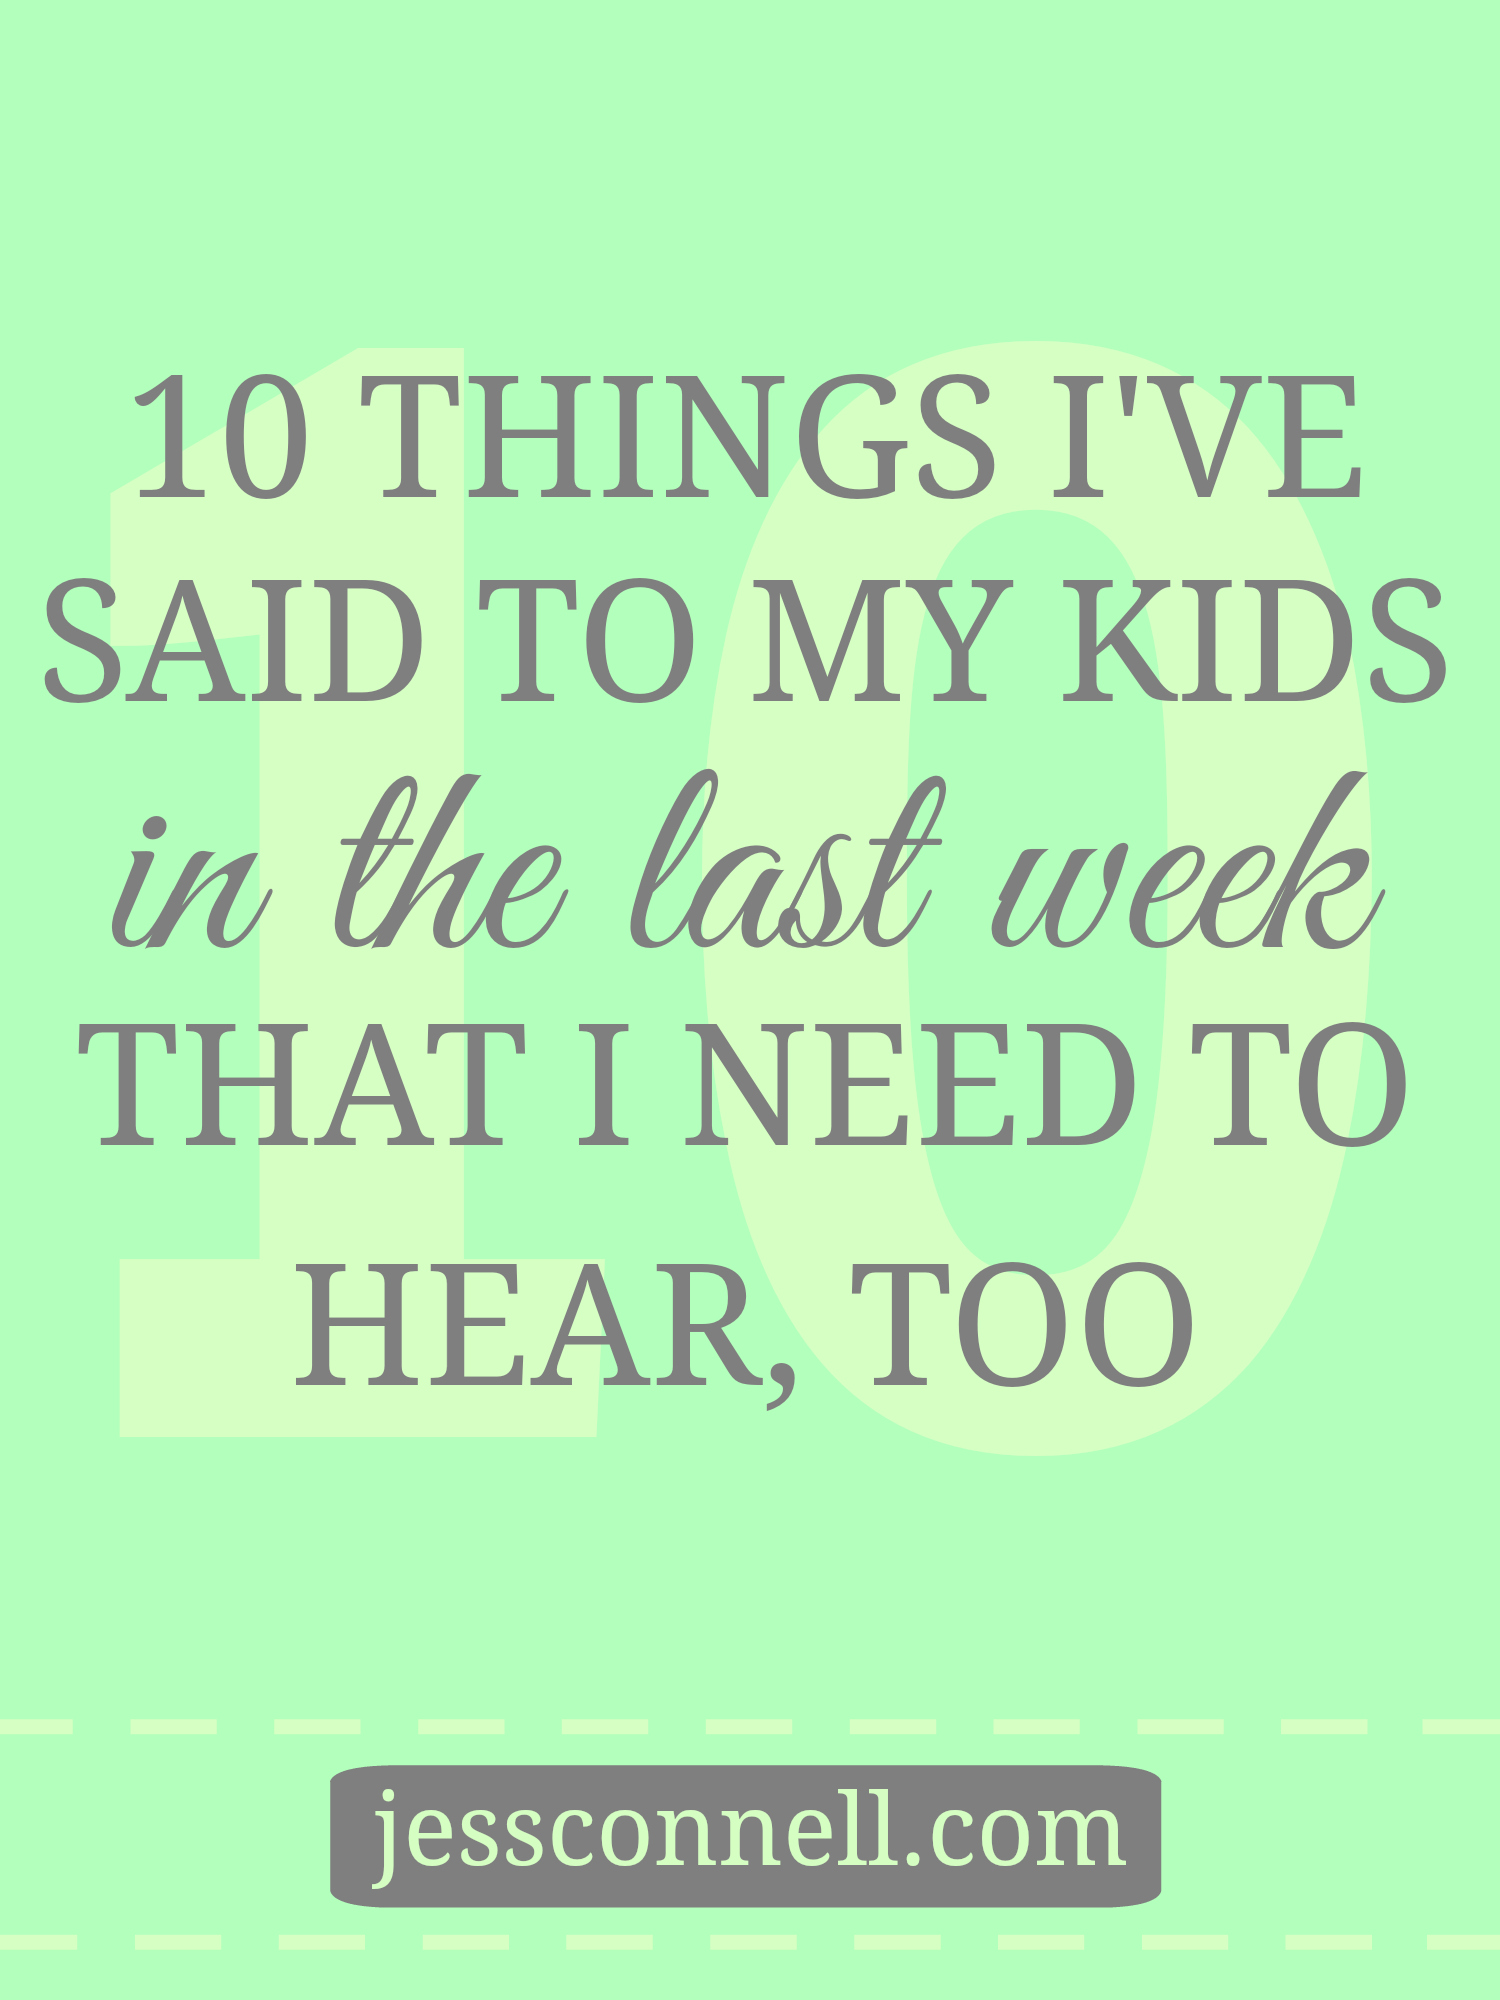 10 Things I've Said to My Kids in the Last Week that I Need to Hear, Too // jessconnell.com